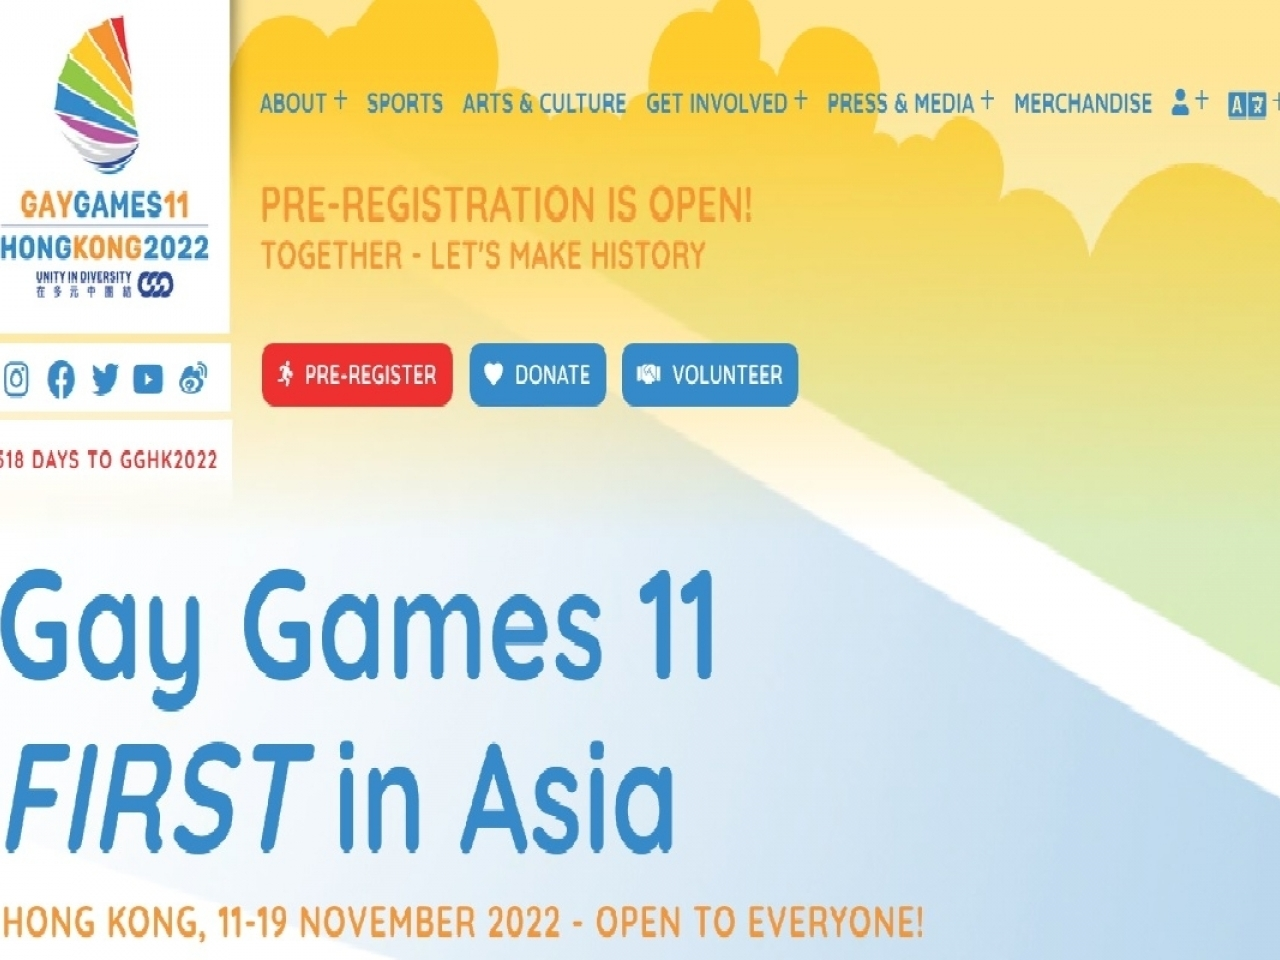 Organisers say delaying the Gay Games would give participants more time to prepare. Image courtesy of the Gay Games 11 Hong Kong 2022